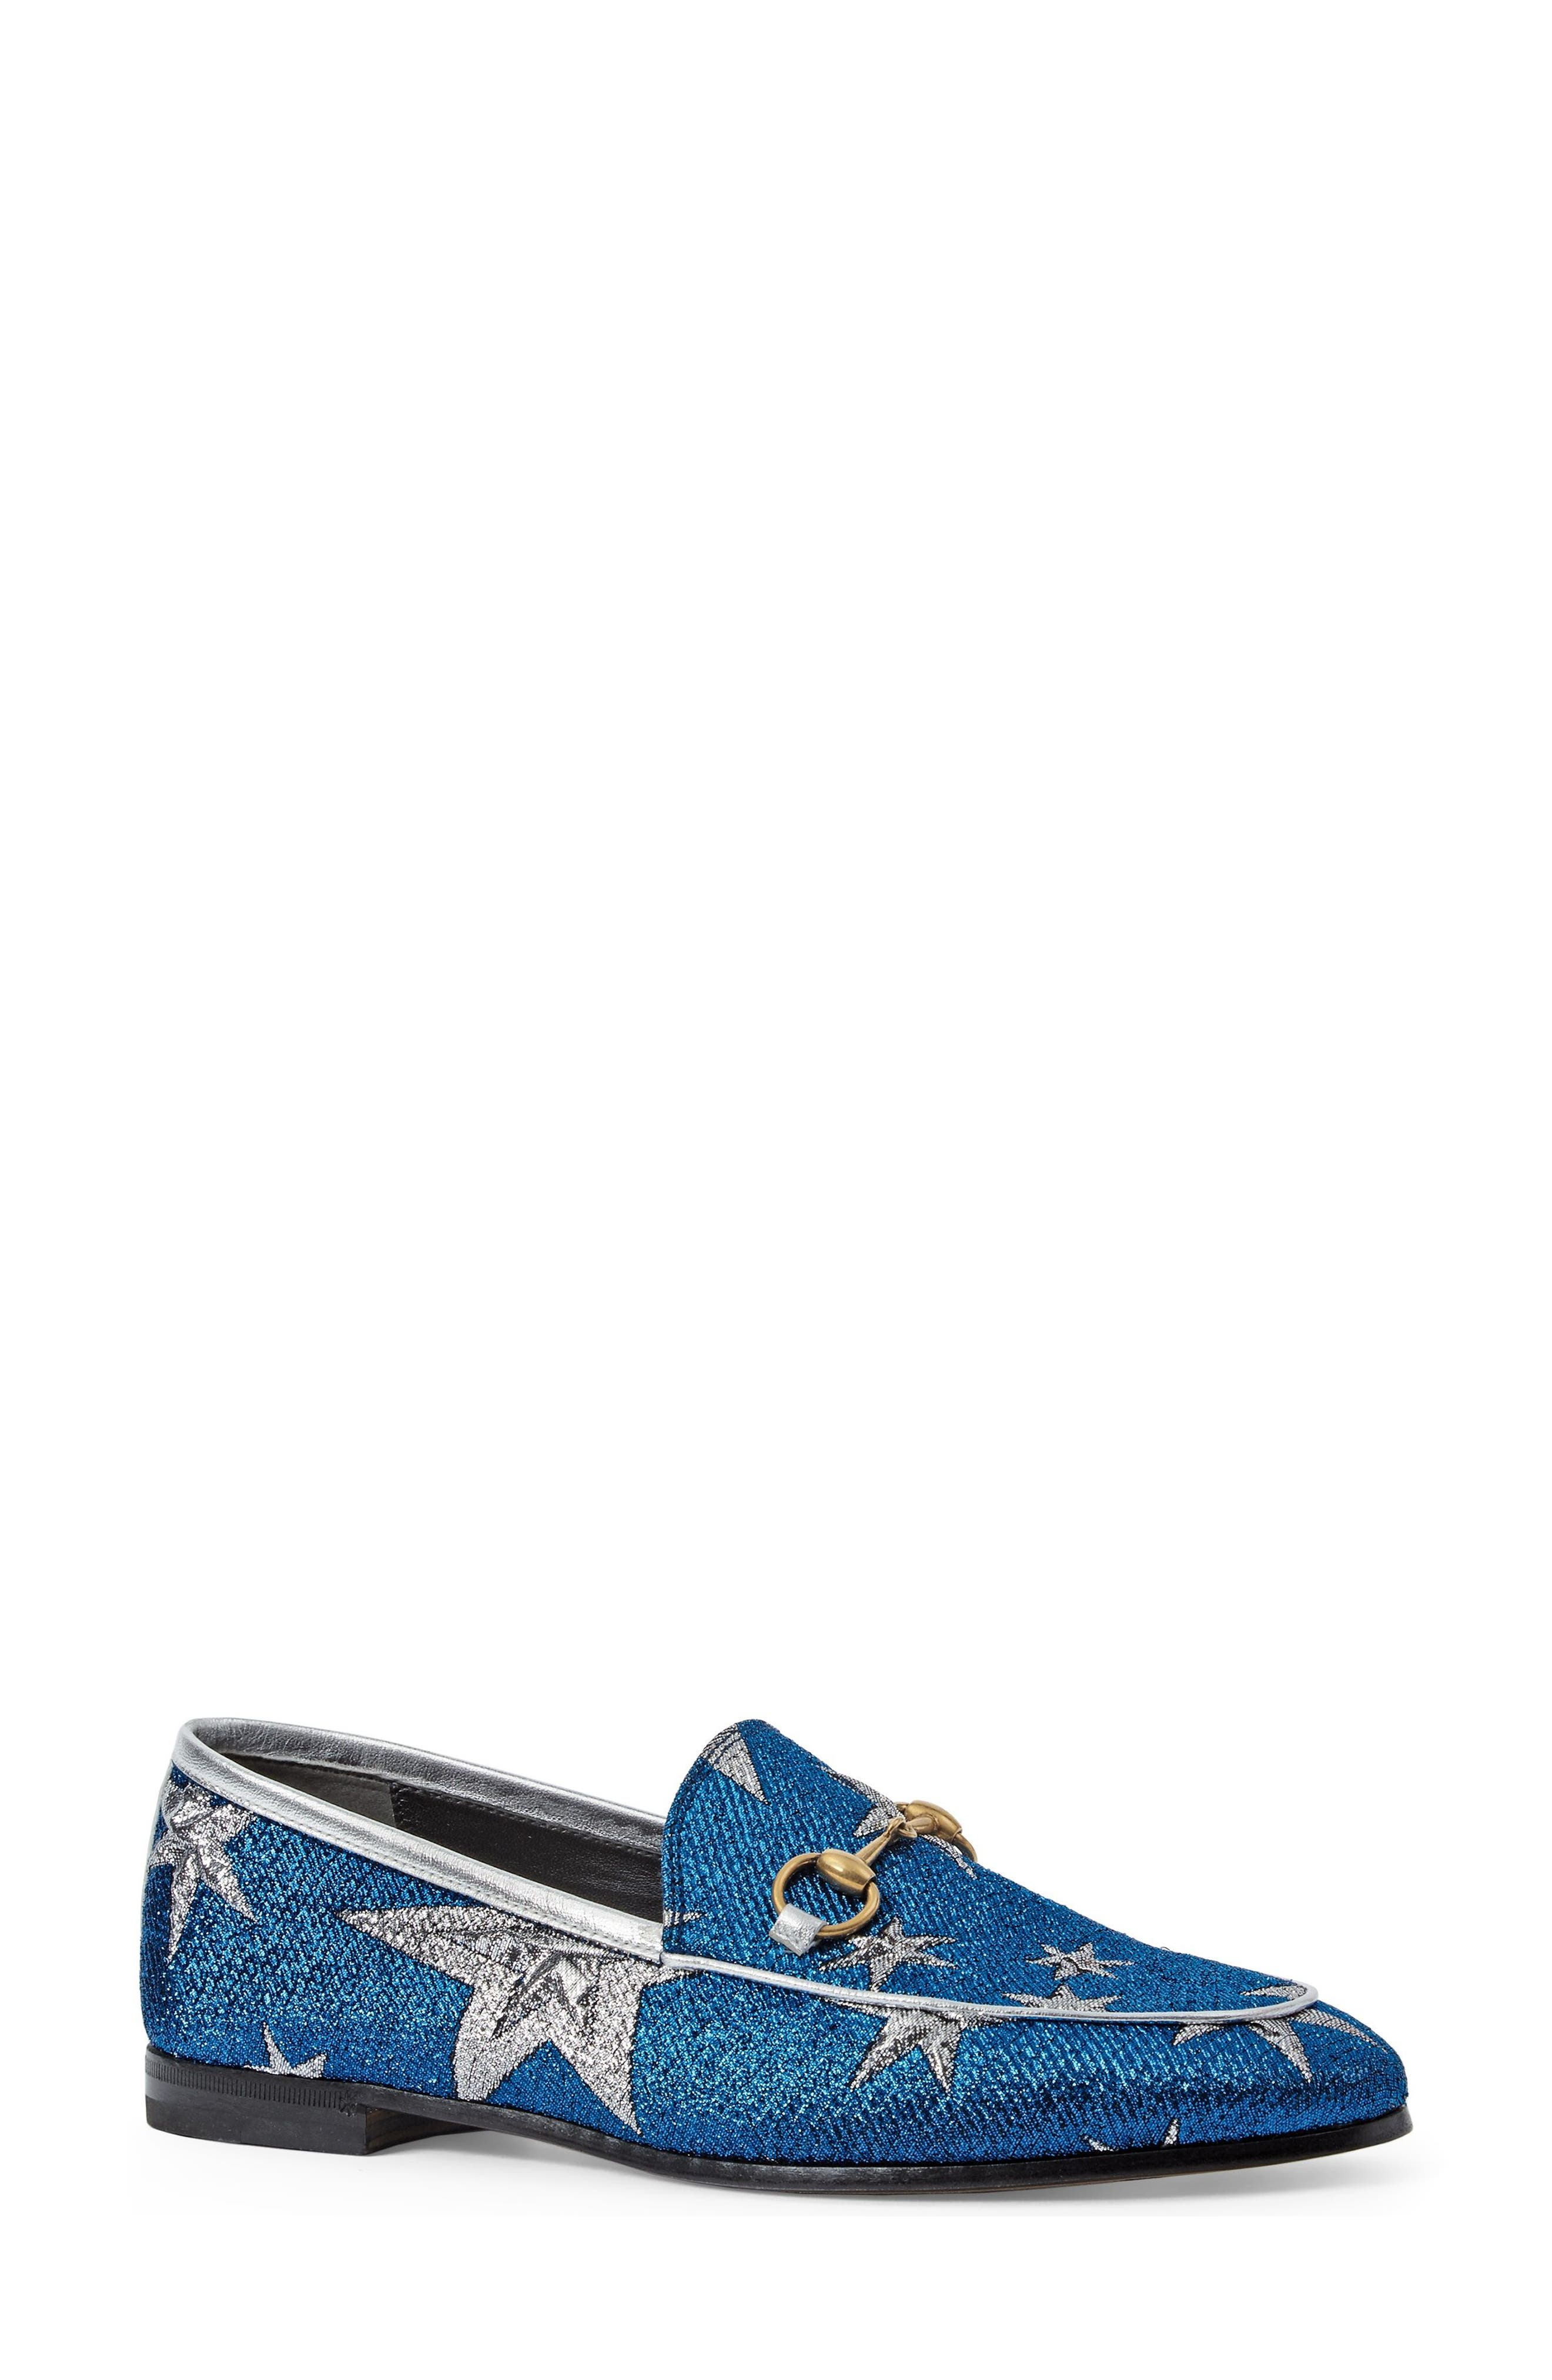 Alternate Image 1 Selected - Gucci Brixton Star Loafer (Women)